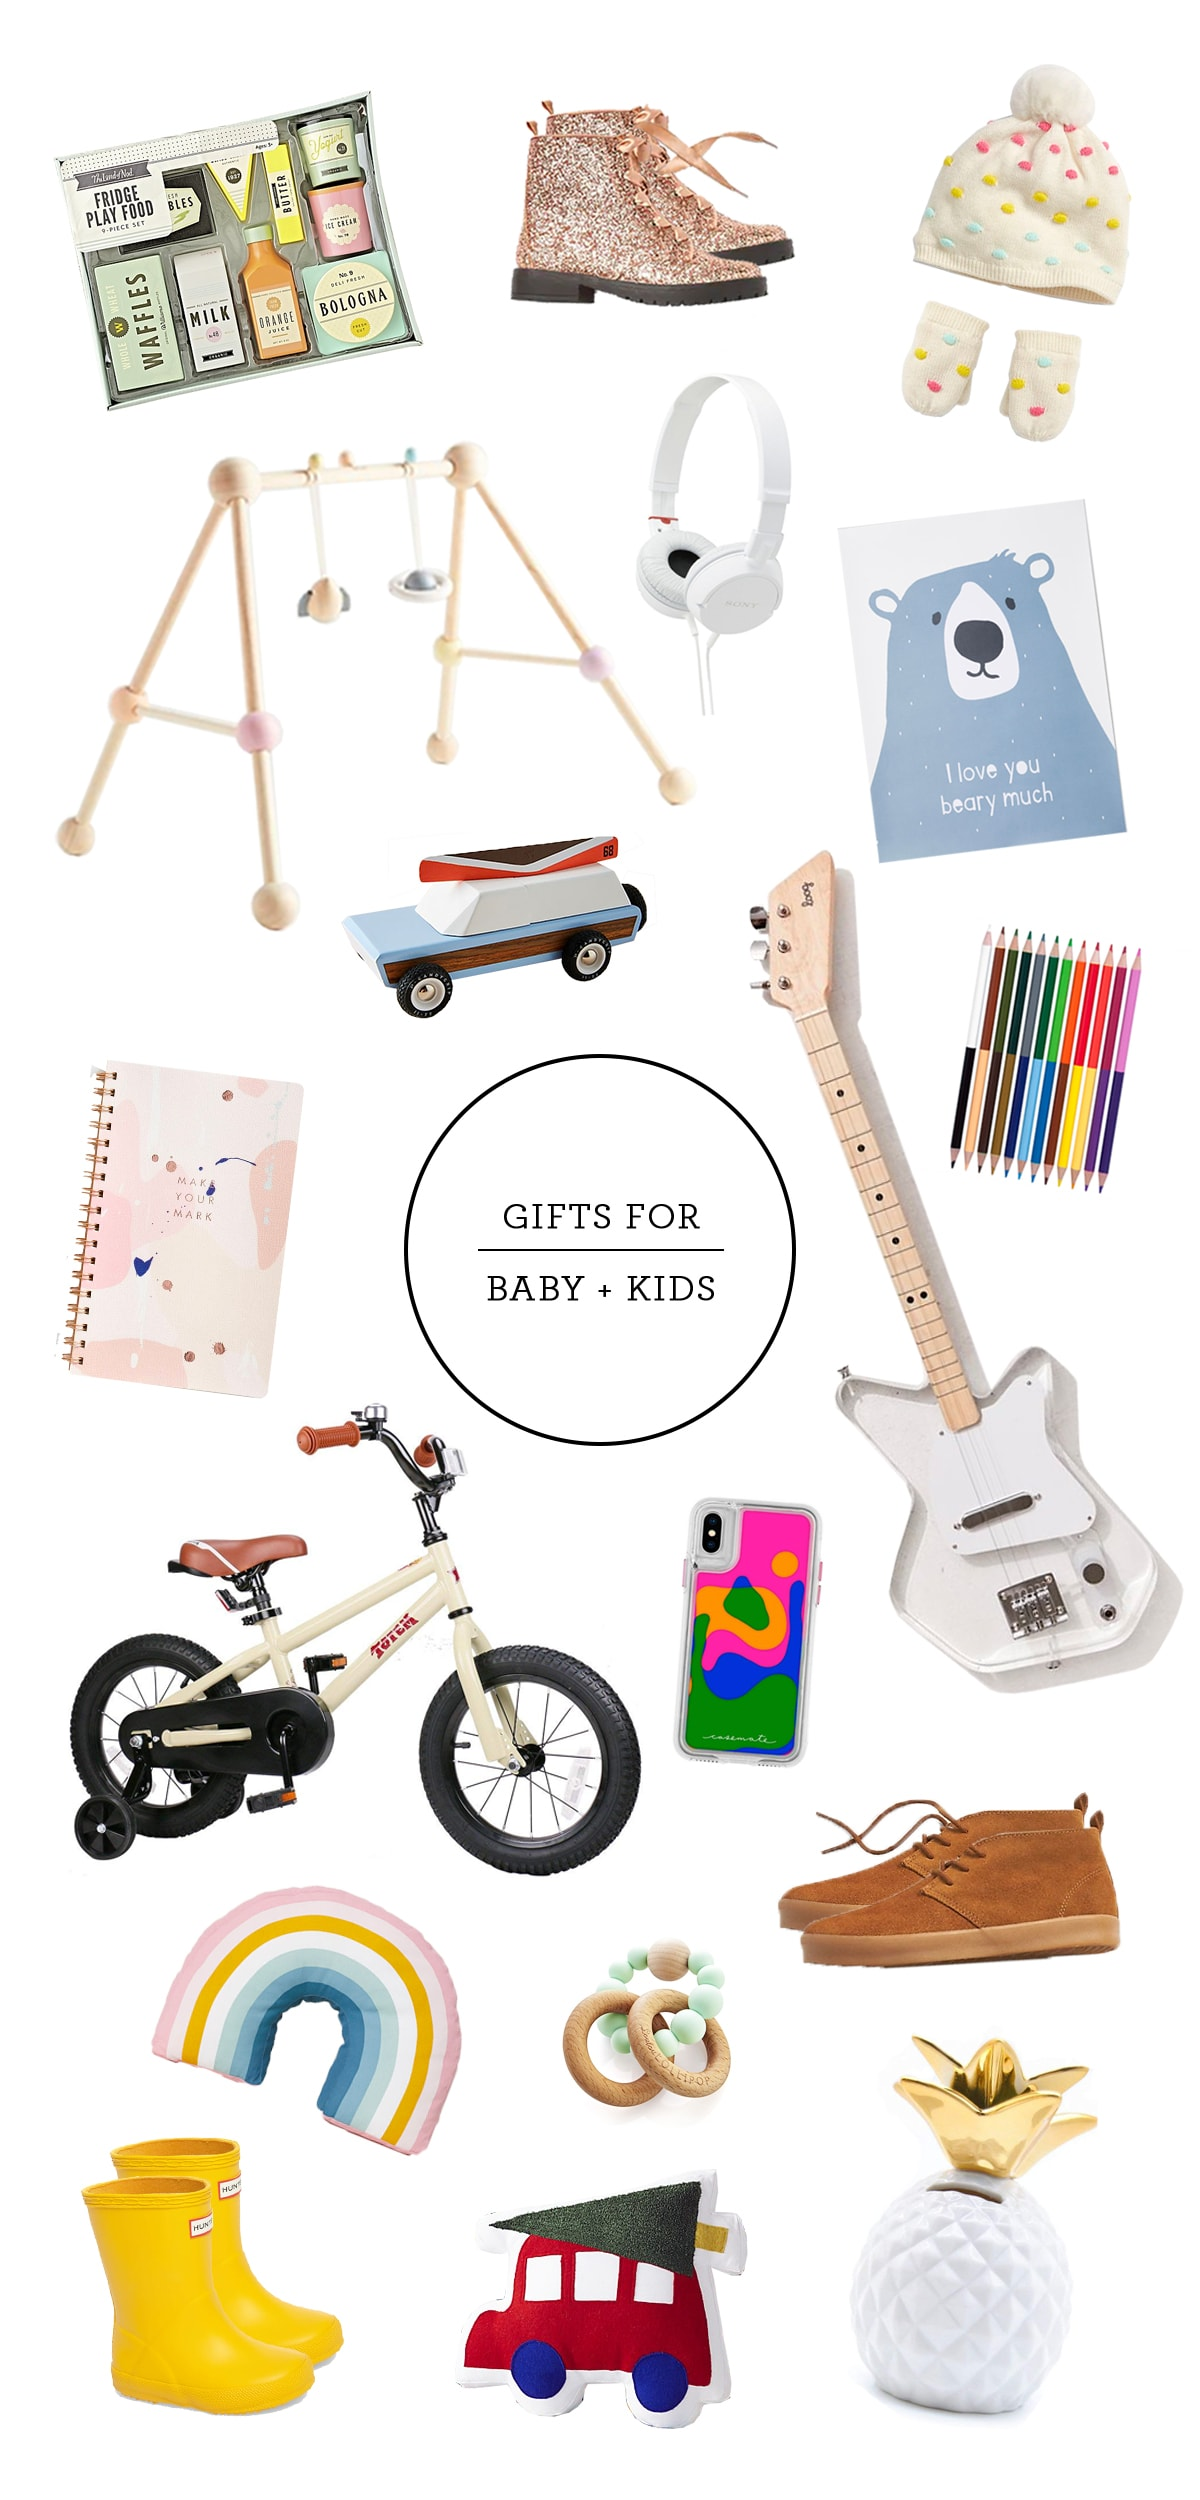 Shopping guide Gifts for Kids by houston lifestyle and diy blogger Ashley Rose with Sugar and Cloth #holidays #shoppingguide #christmas #kidsgifts #babygifts #holidayshopping #chirstmasshopping